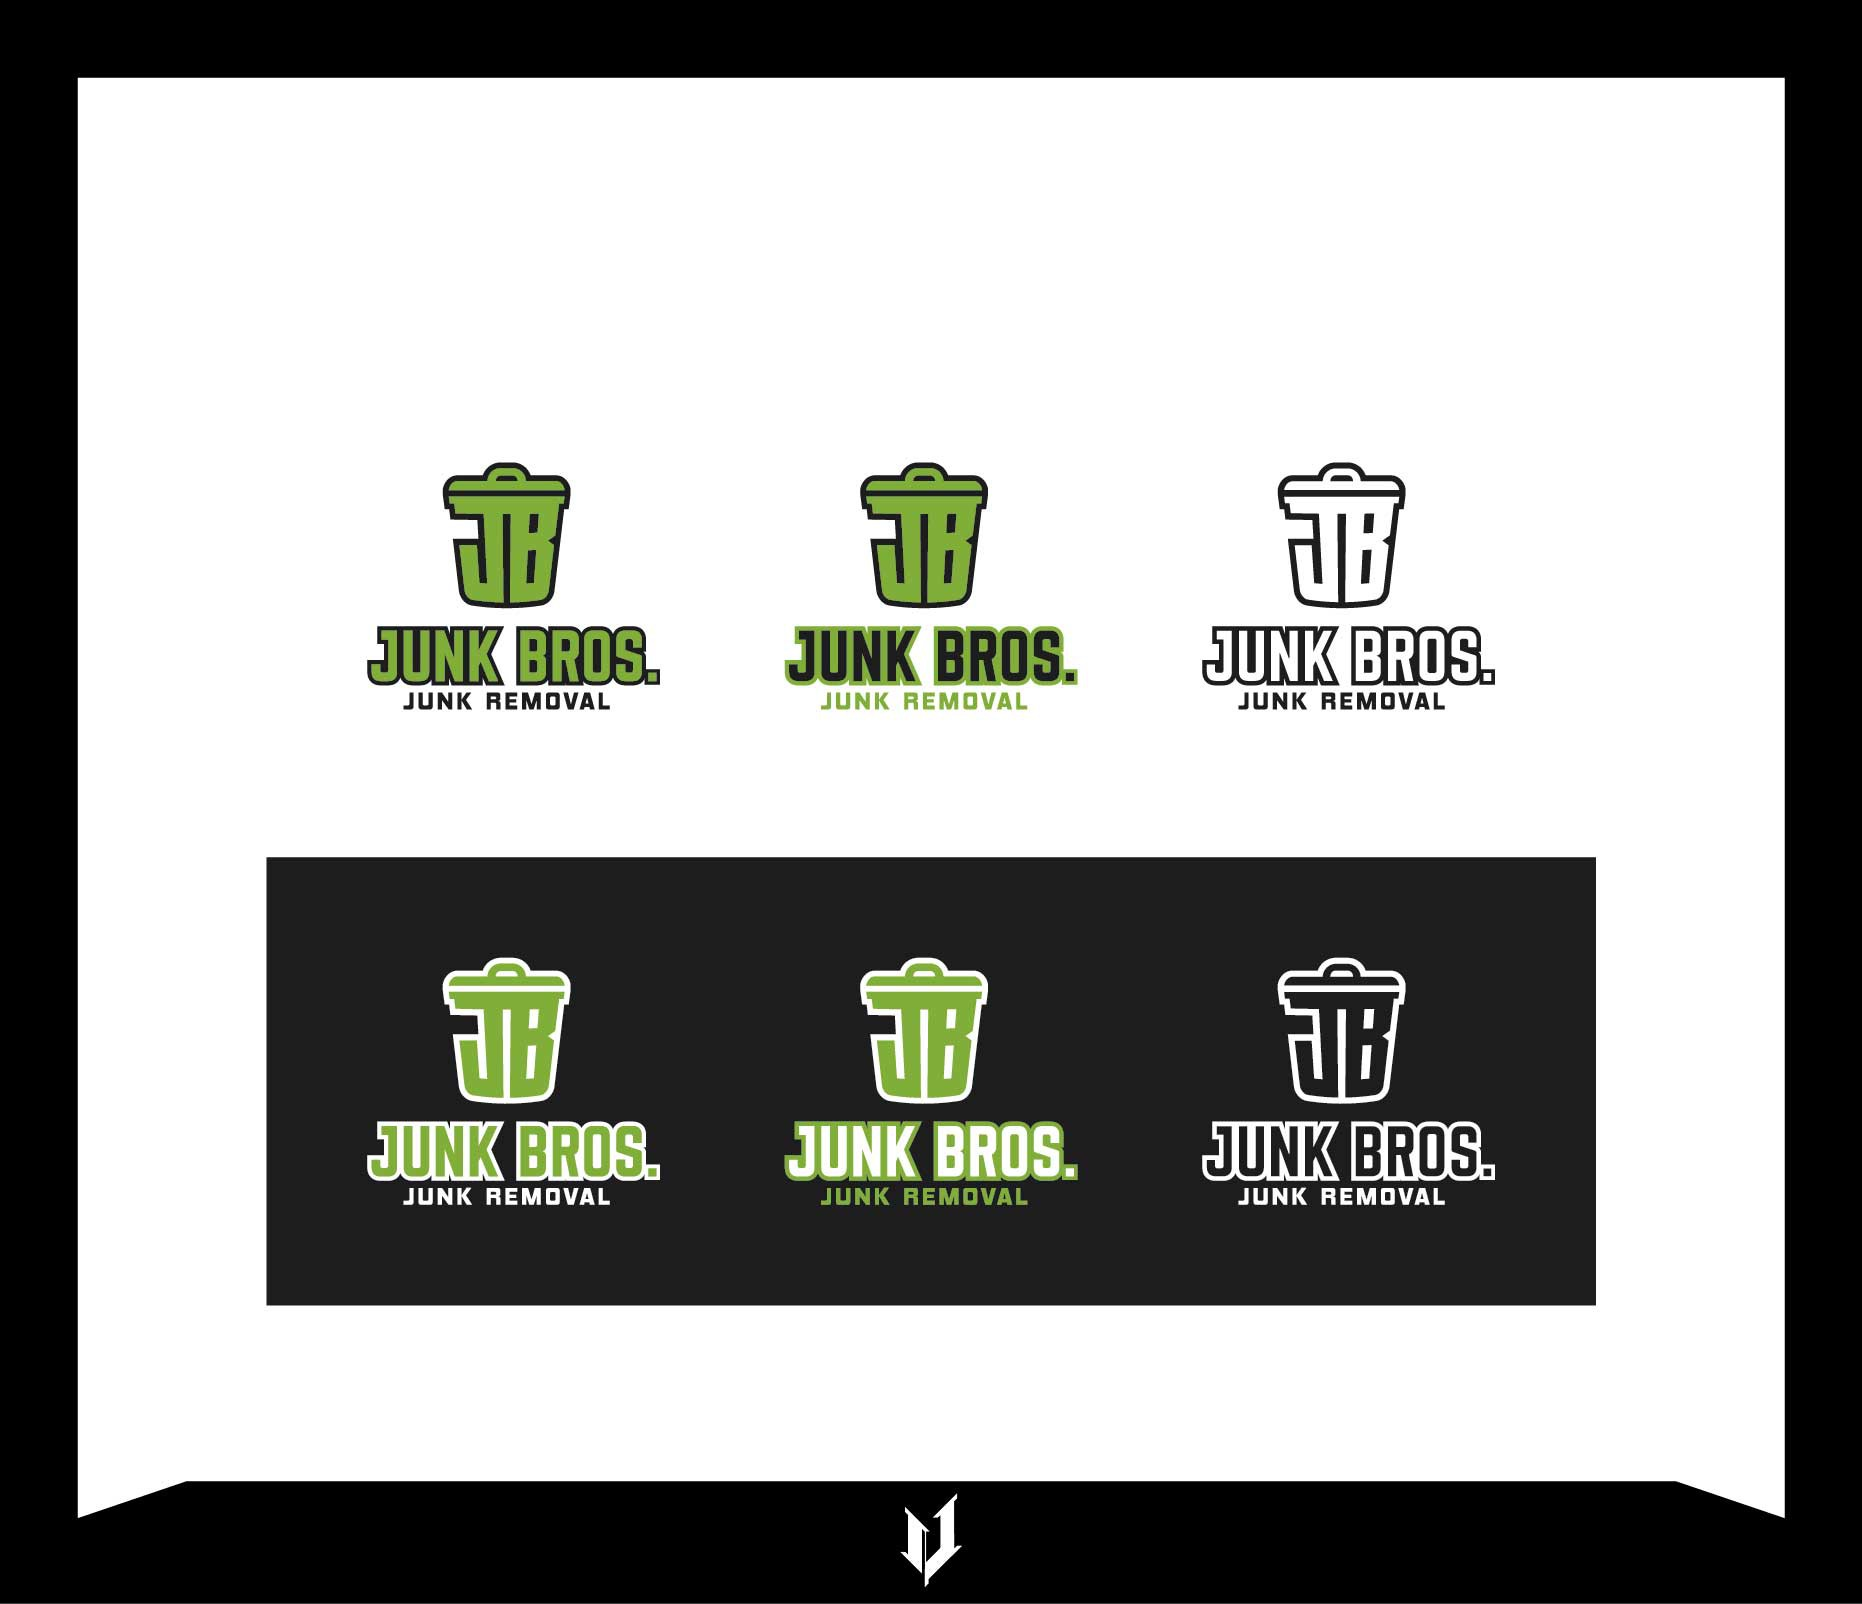 GUARANTEE- Create a unique and impactful logo for a junk removal business.